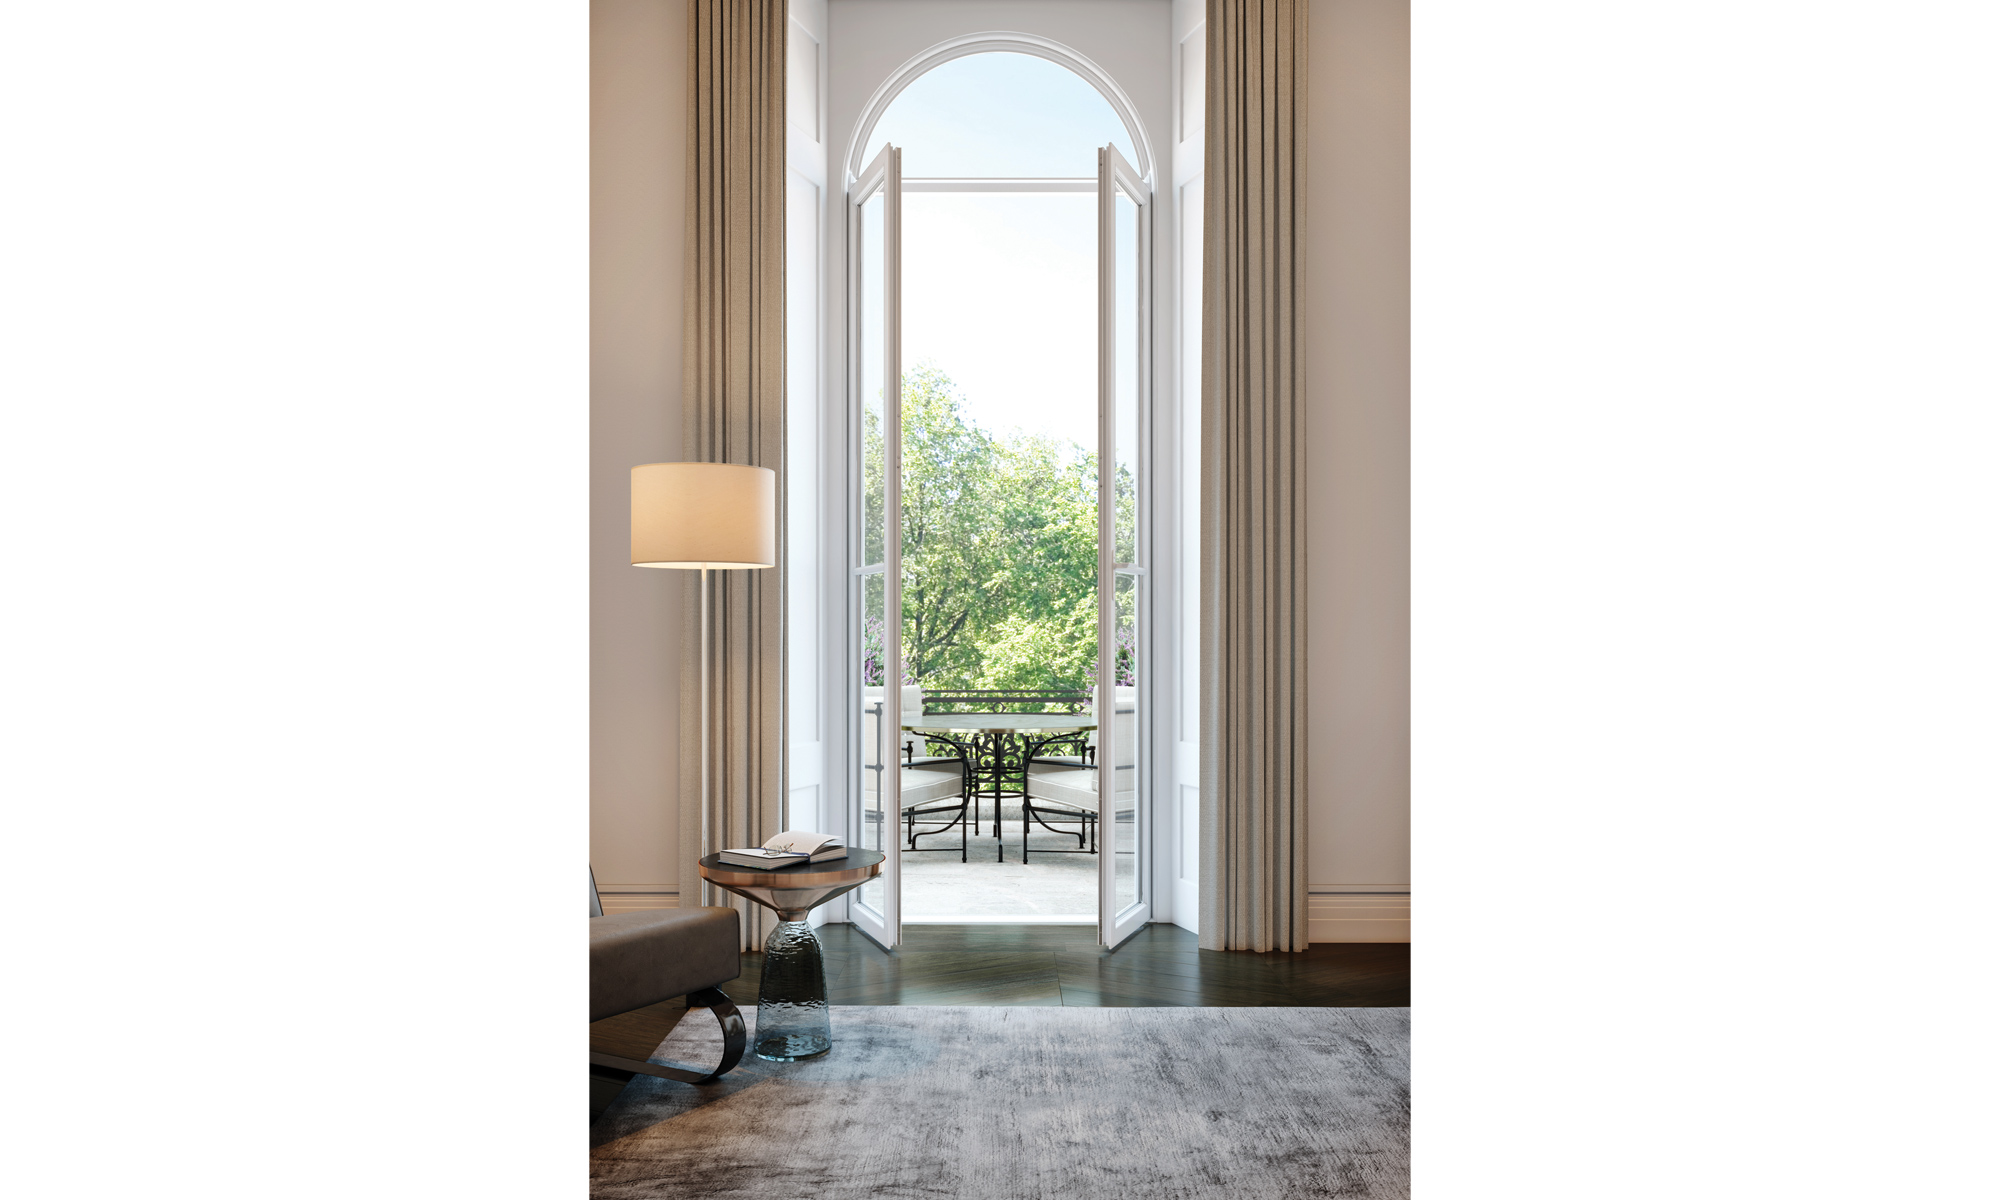 Artist's impression of the formal reception French doors within a lateral apartment.